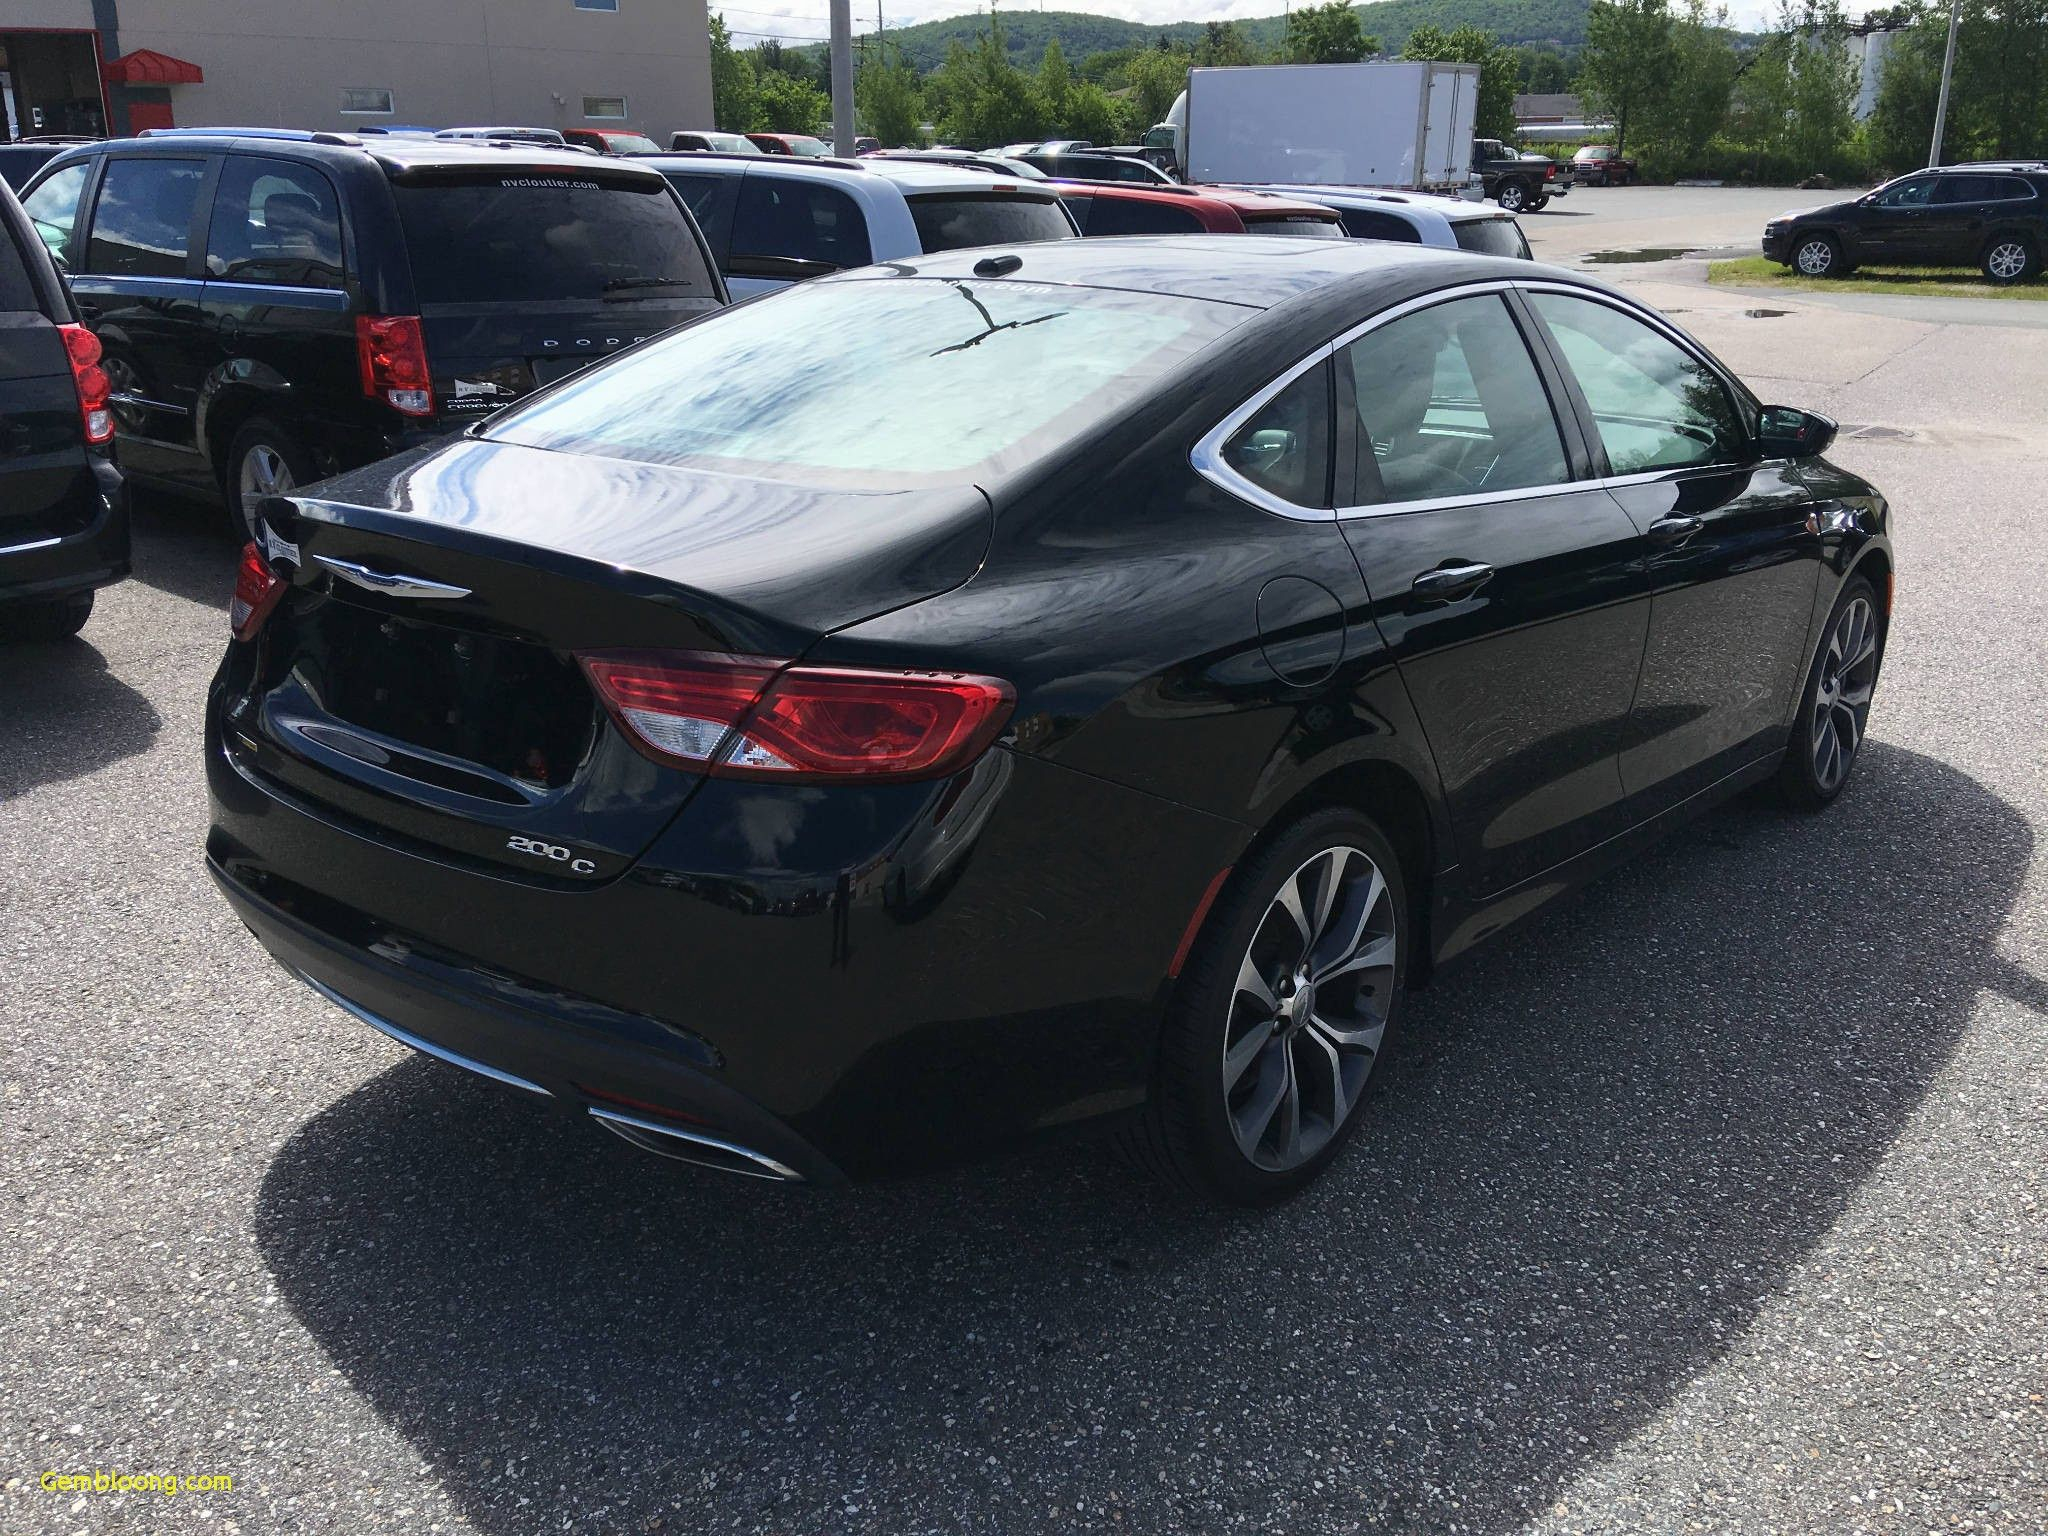 20 New 2019 Chrysler 200 Convertible Research New